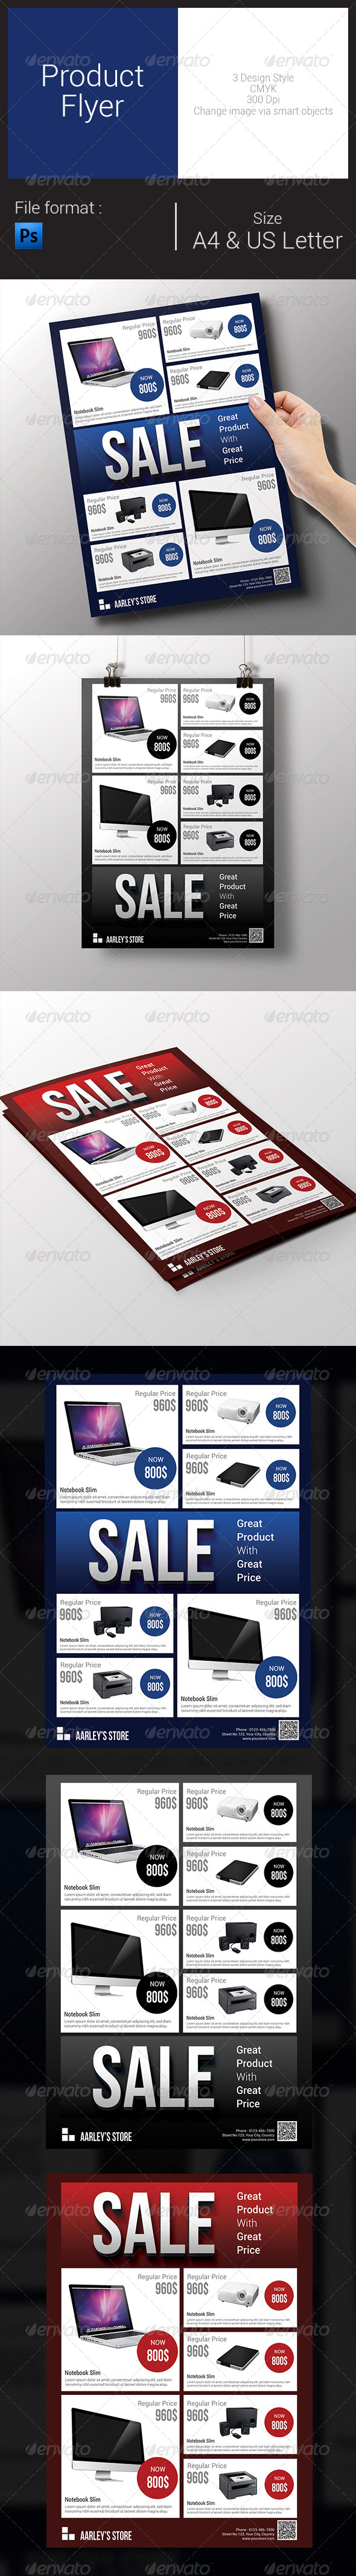 GraphicRiver Product Flyer 8096311